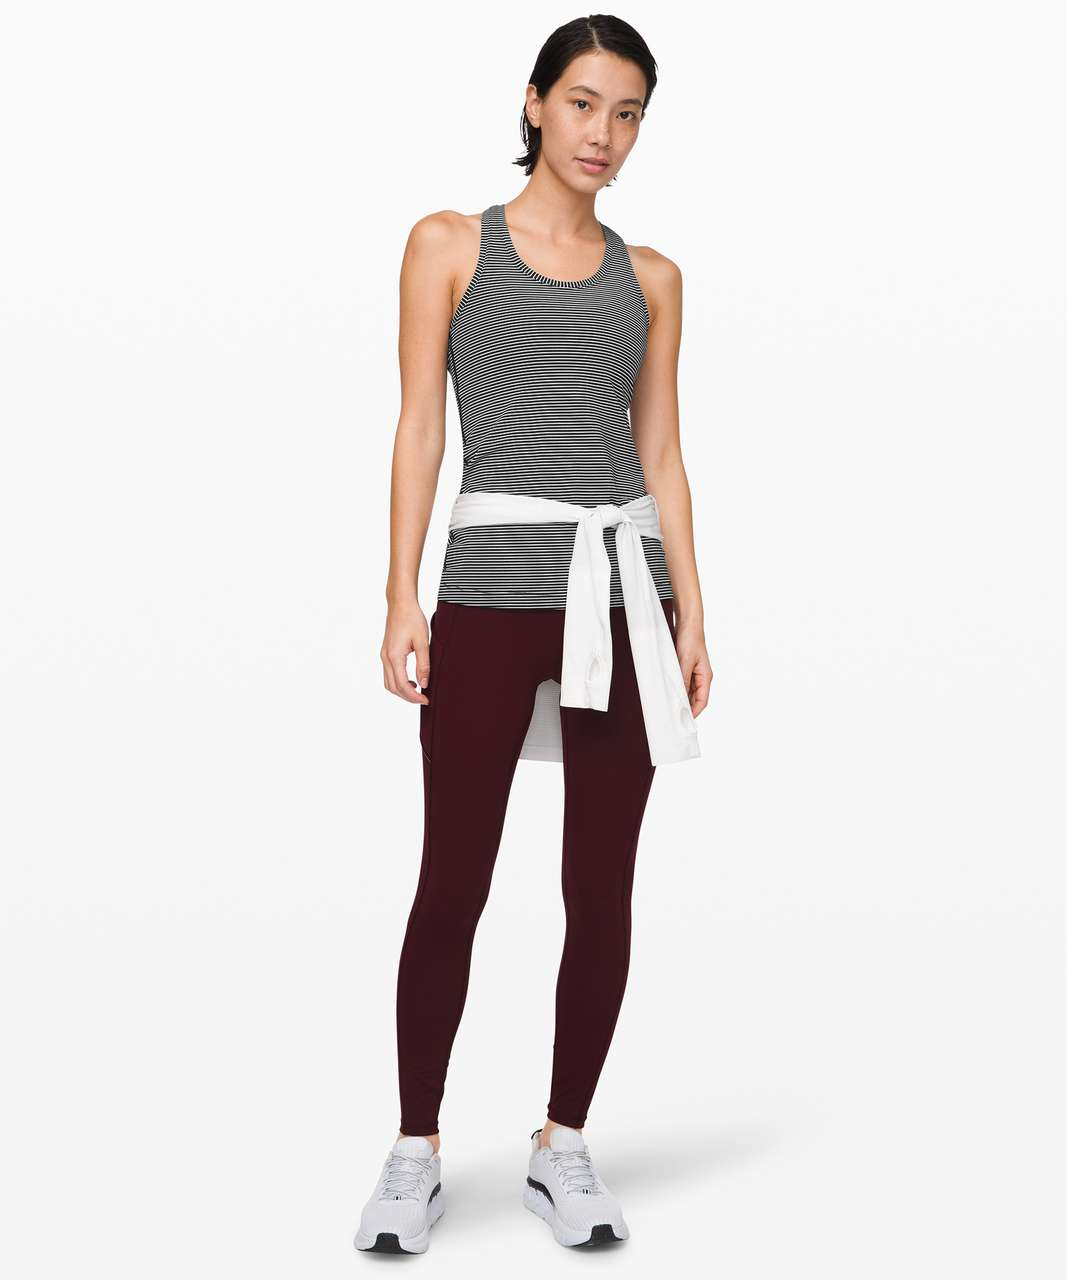 Lululemon Cool Racerback - Hype Stripe Black White